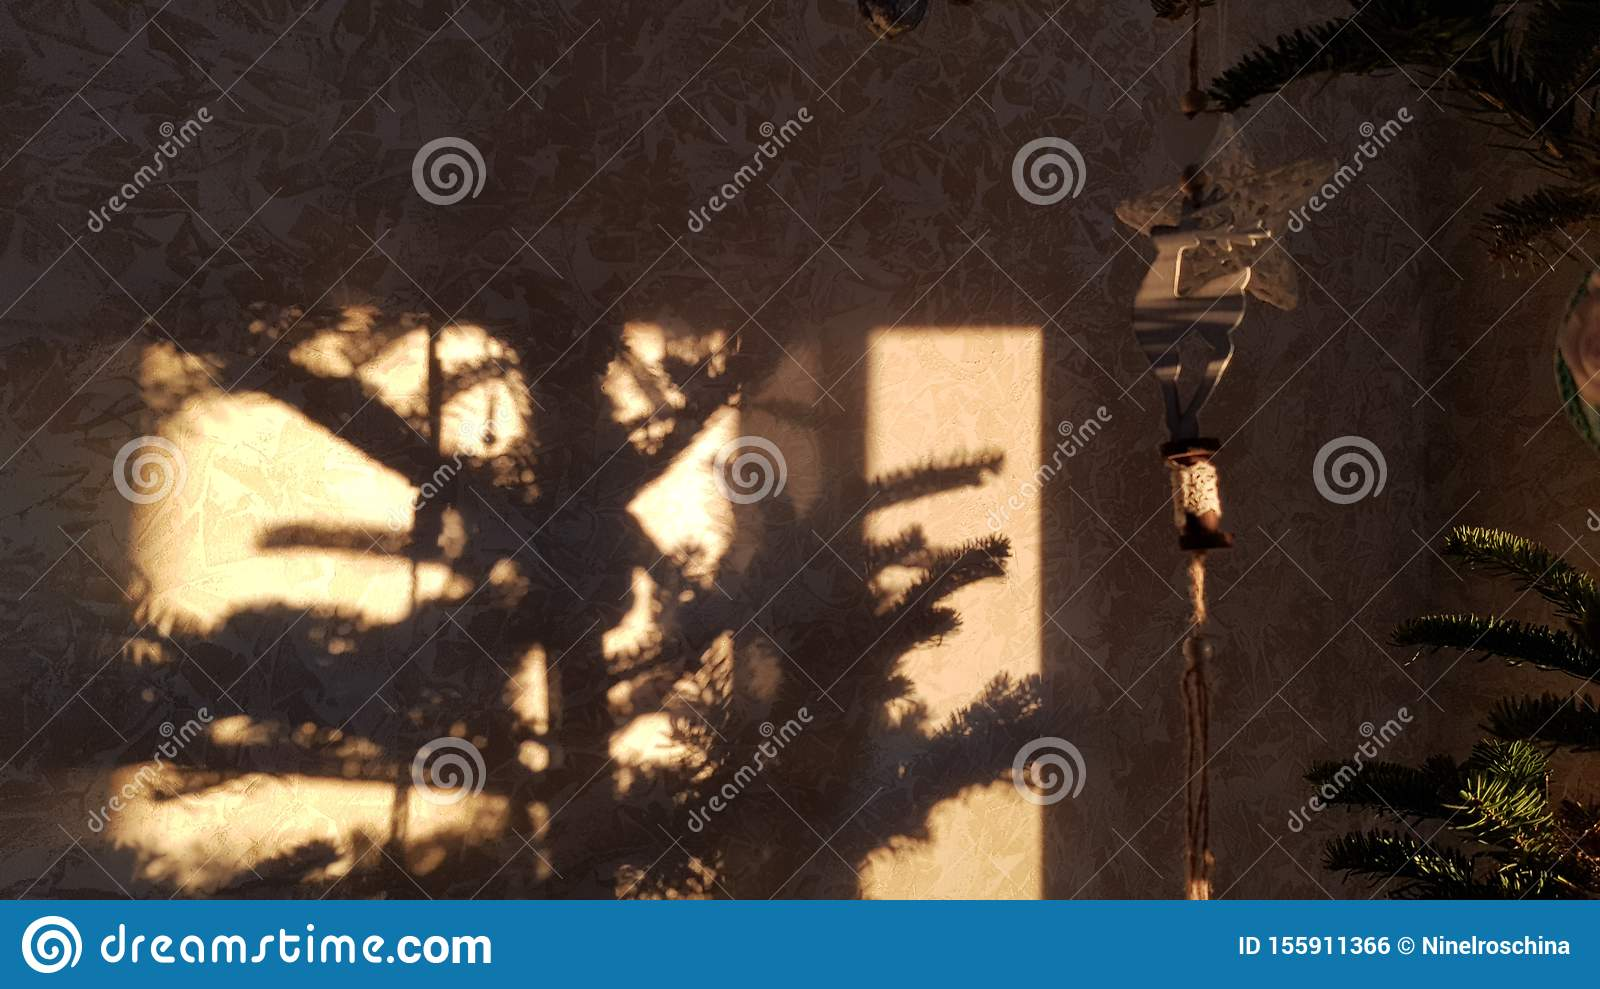 Hanging Christmas Ornaments Silhouette.Abstract Background Of Conifer Branches With Silhouette